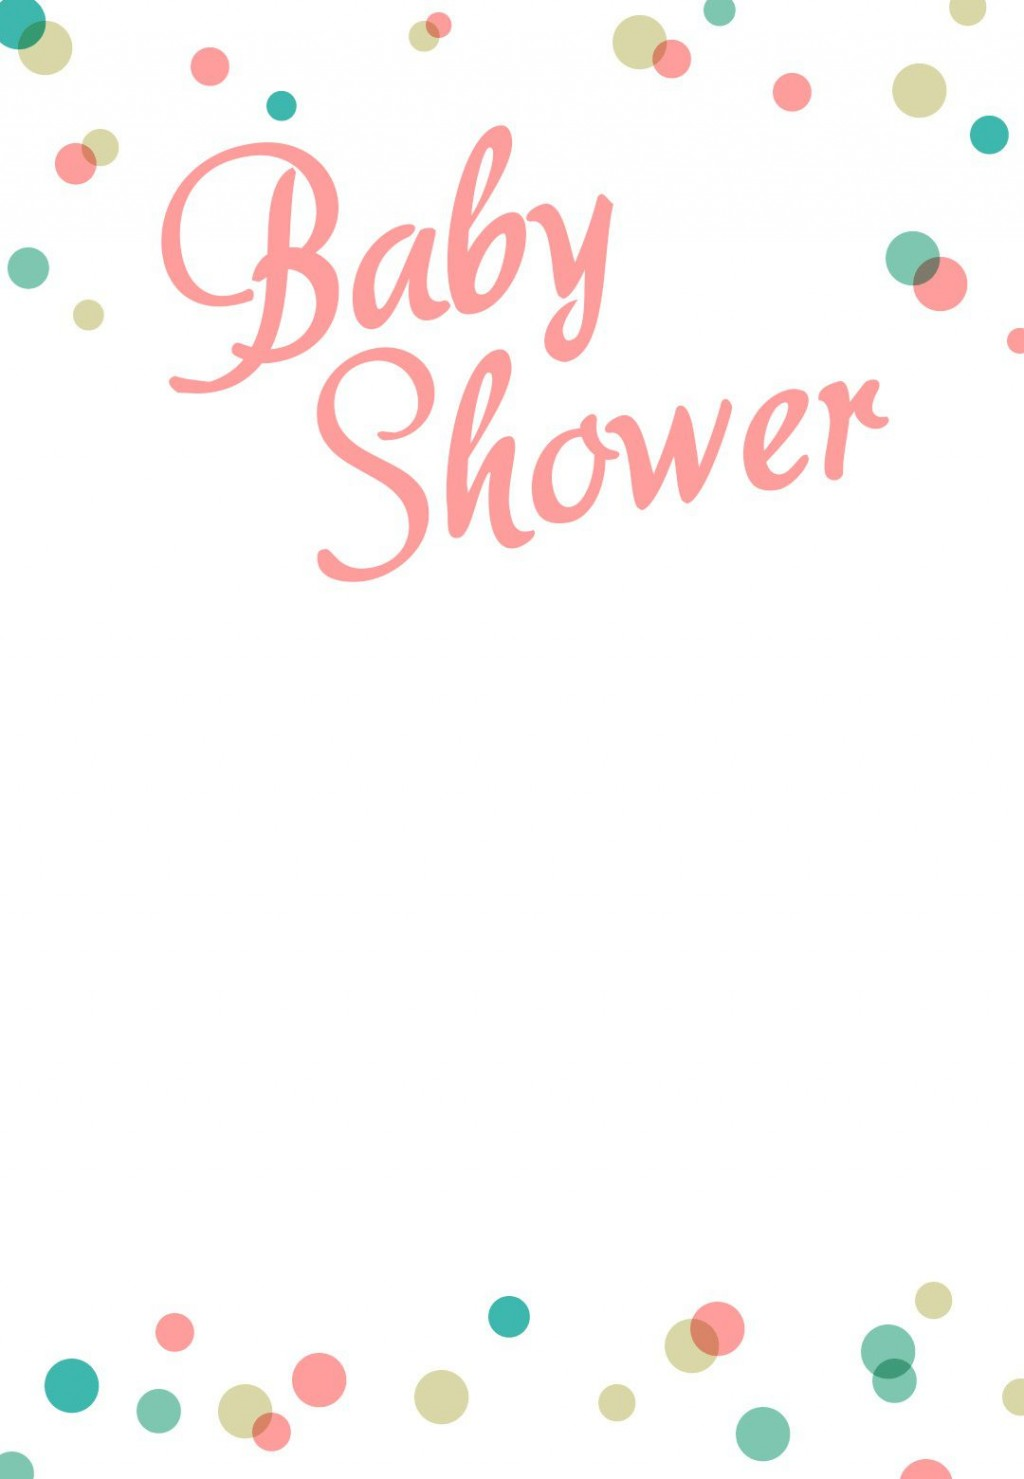 006 Unique Baby Shower Template Free Printable Highest Quality  Superhero Invitation For A Boy DiaperLarge